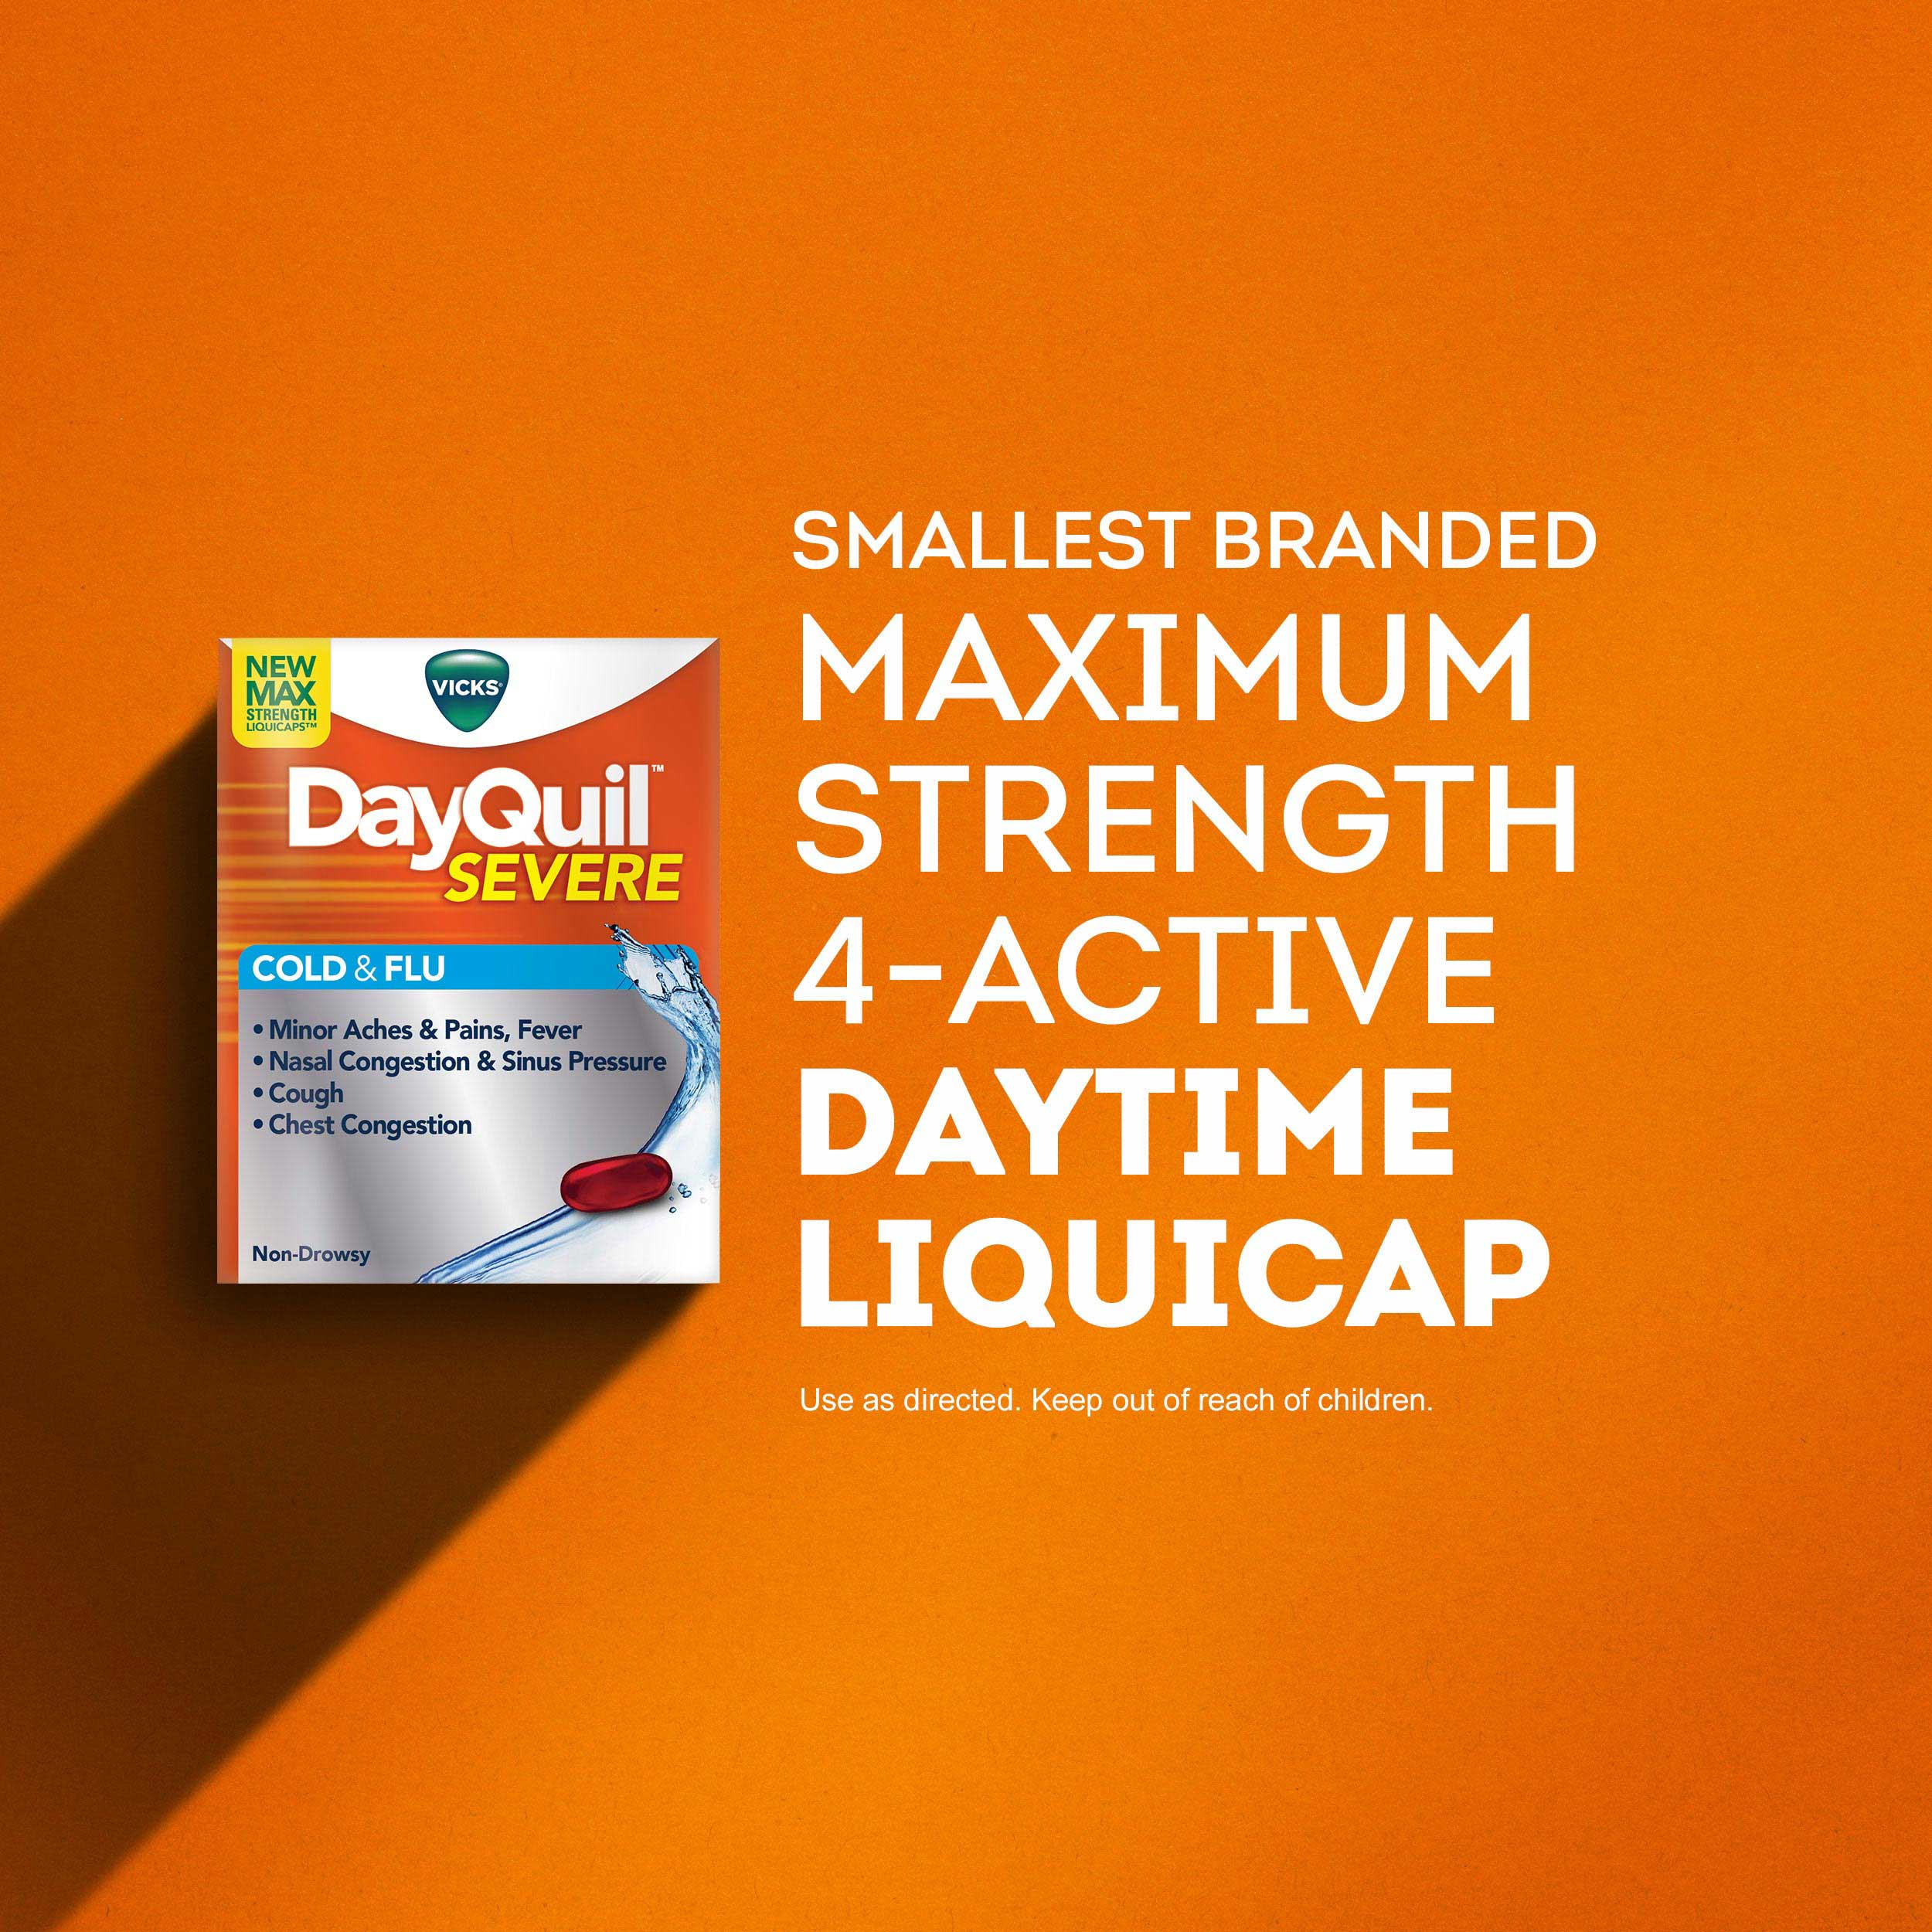 maximum-strength-4-active-daytime-vicks-dayquil-severe-cold-and-flu